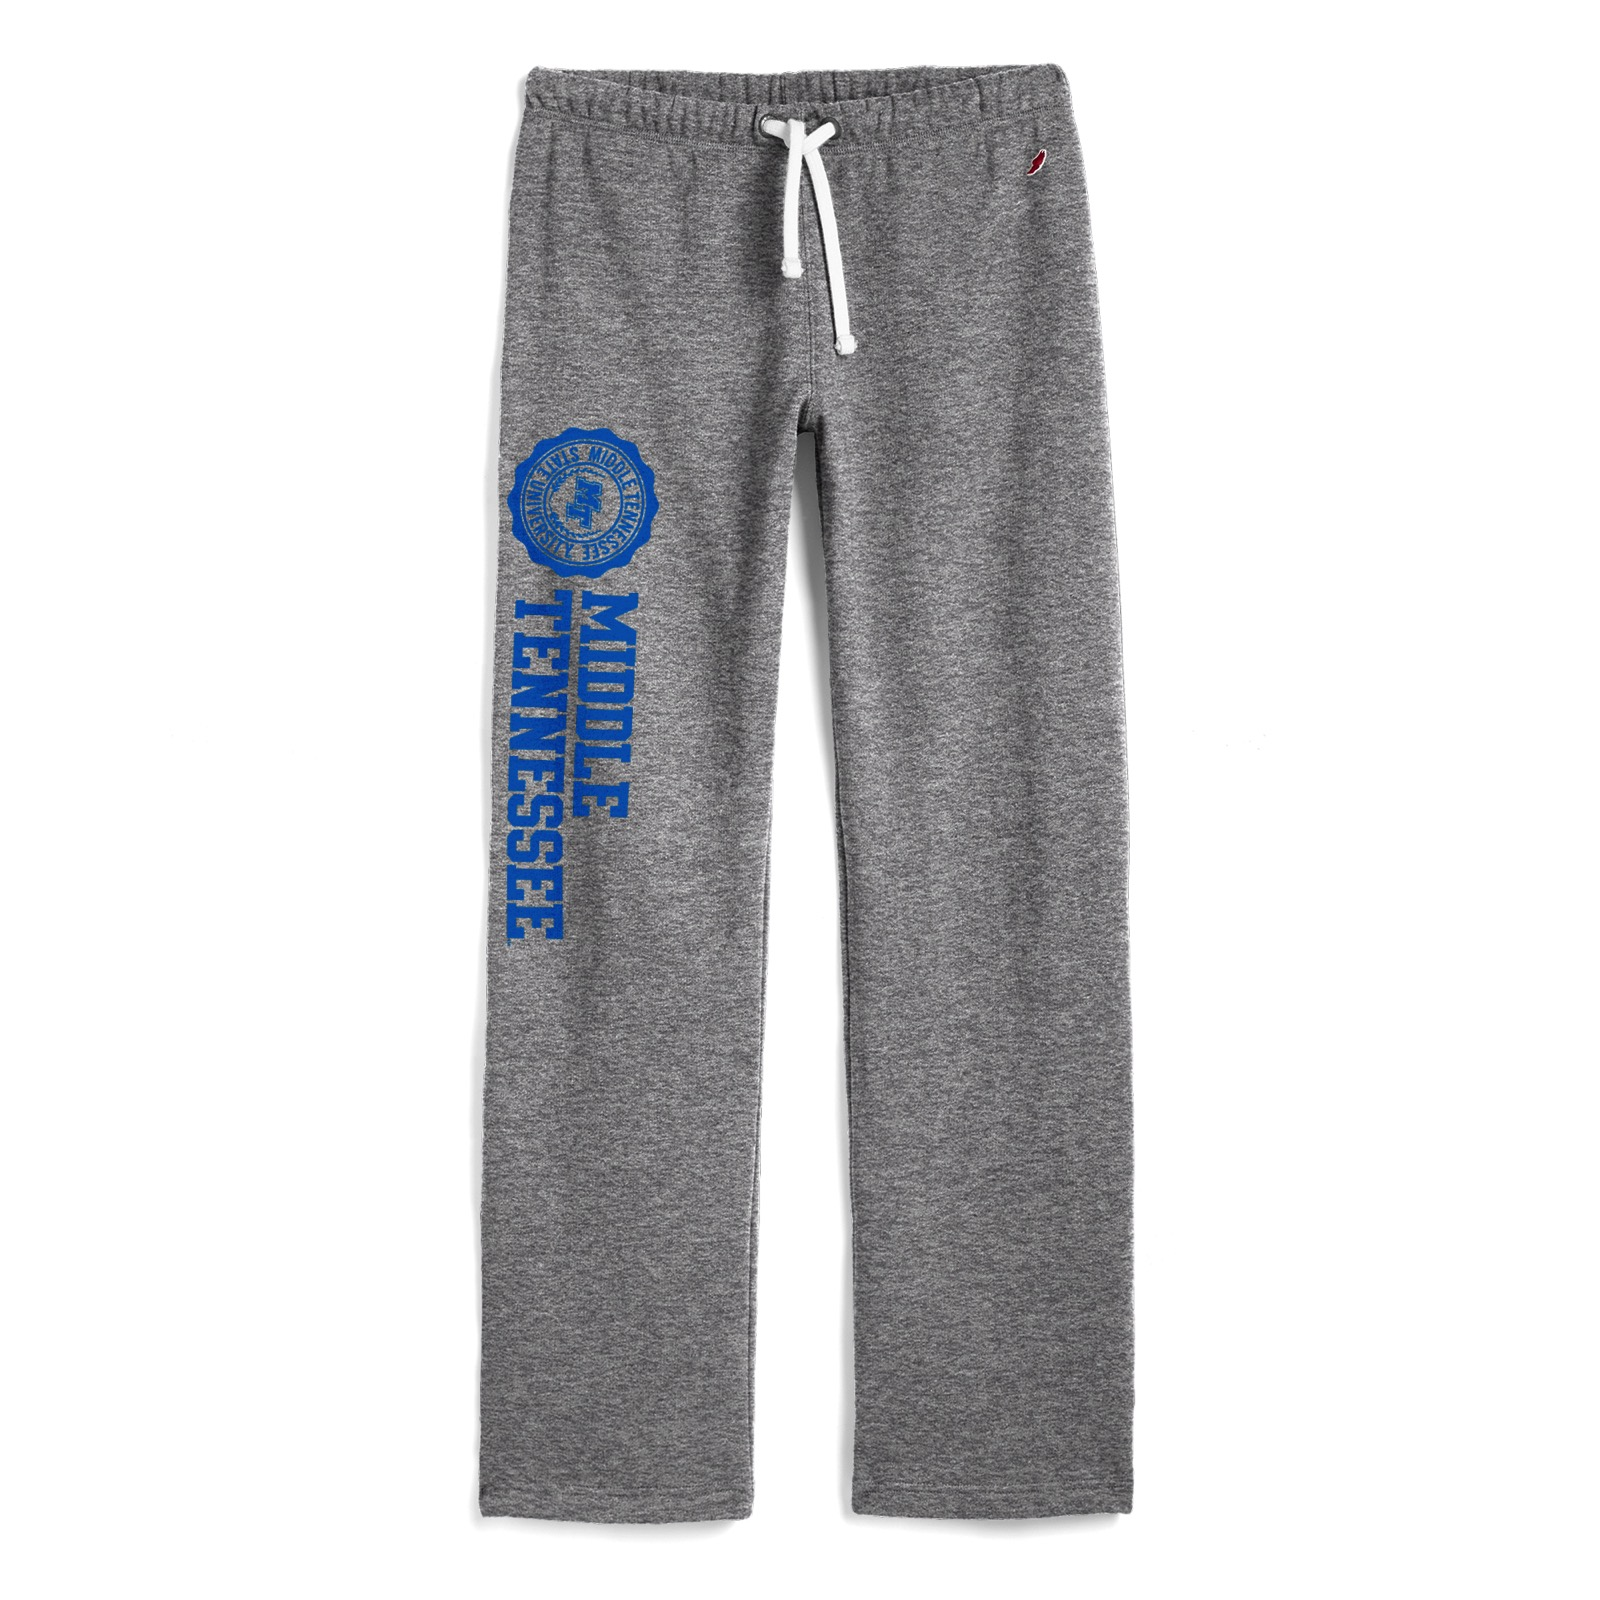 Middle Tennessee Victory Springs Women's Open Bottom Sweatpants